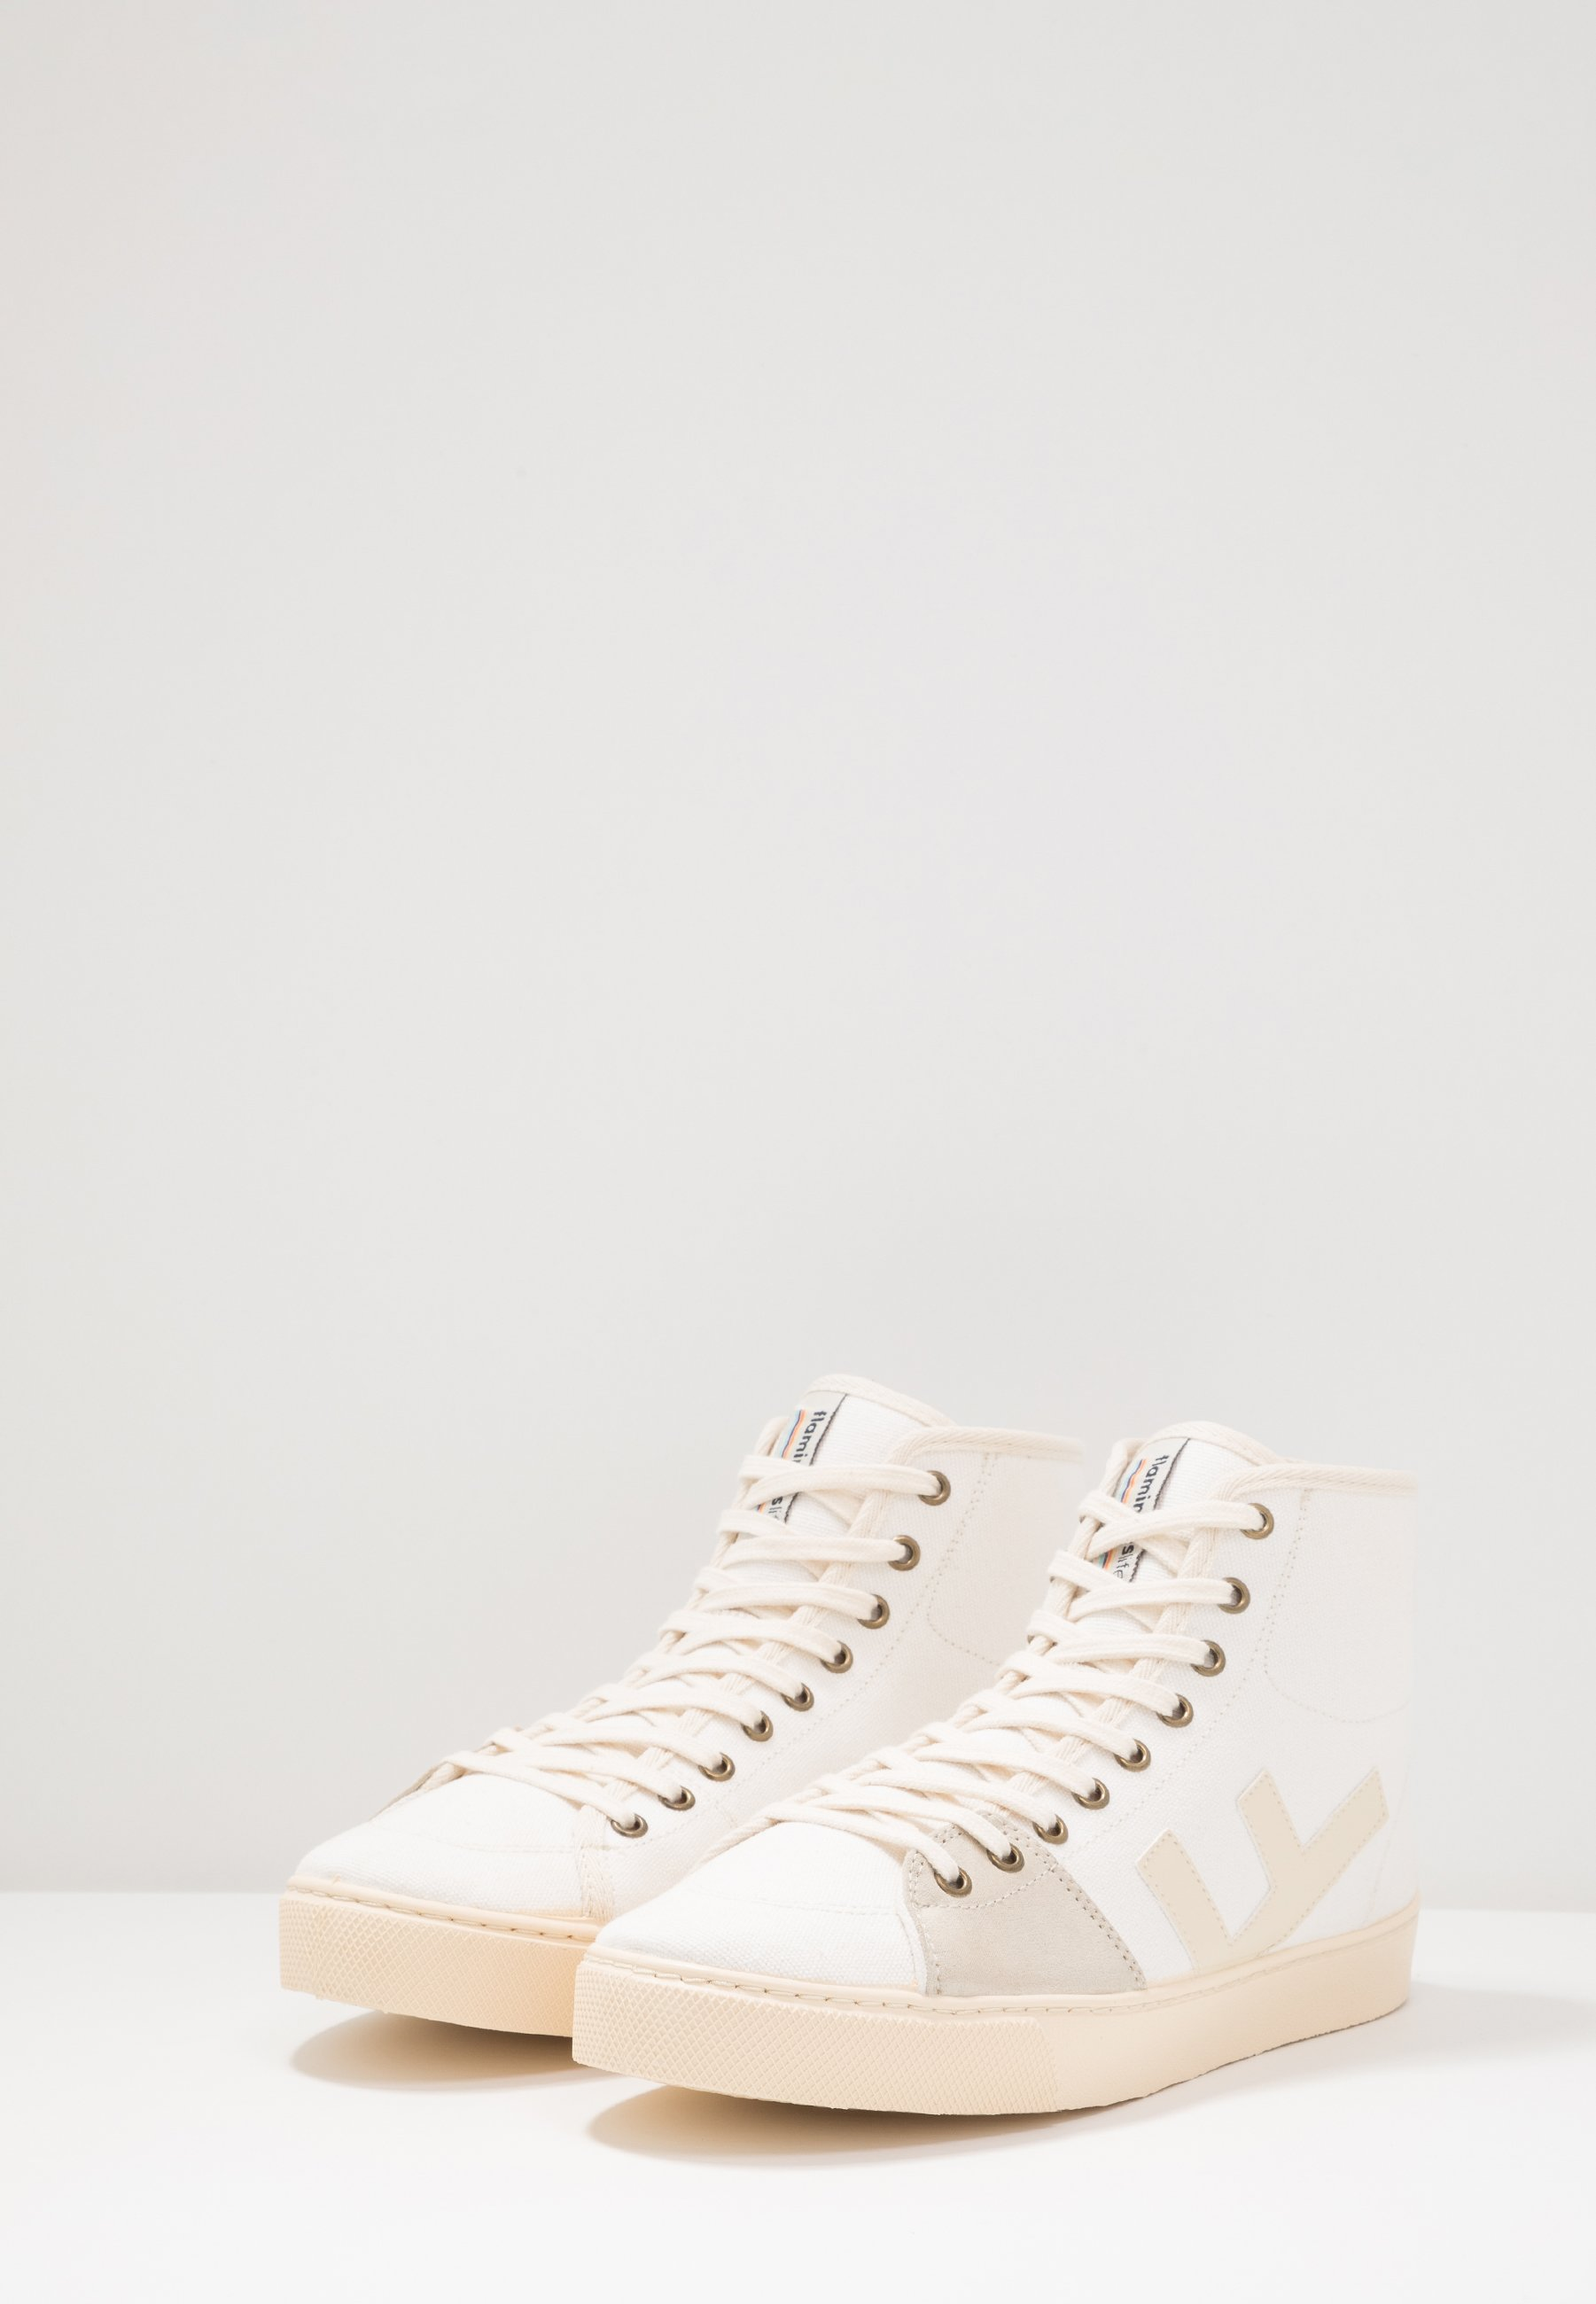 Good Selling Women's Shoes Flamingos' Life EL CAMINO High-top trainers all ivory 5SVGJfGIk